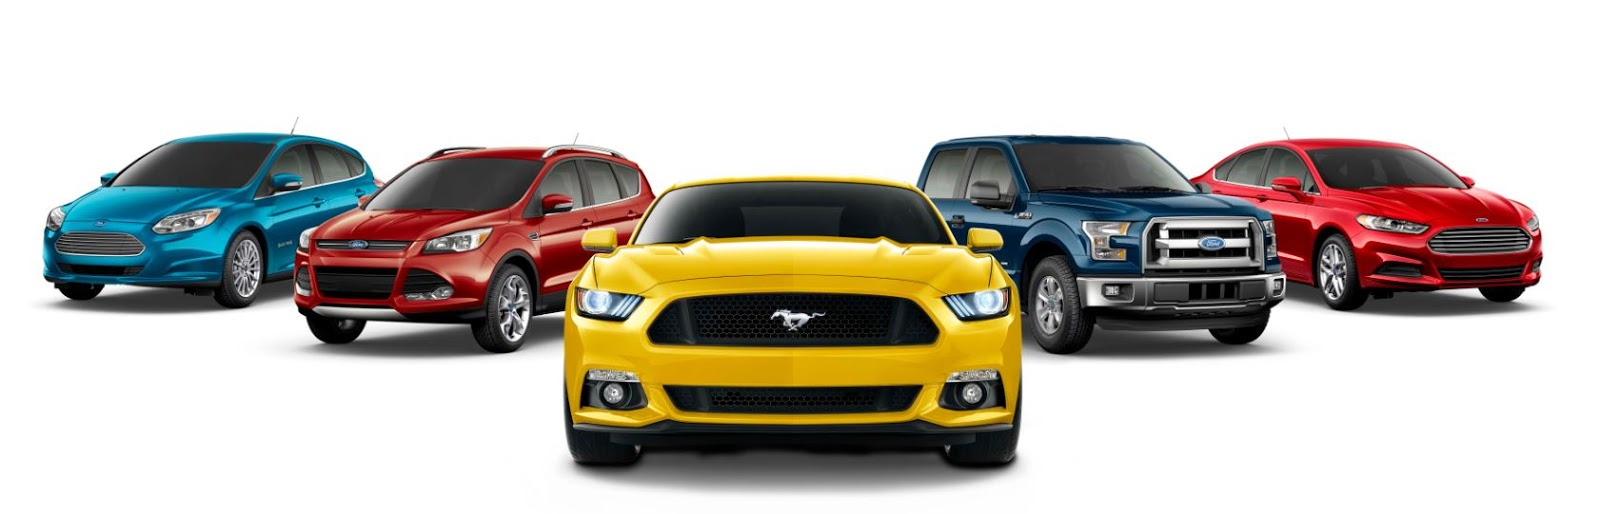 Ford Motor Credit Company is now offering 0% financing for 72 months on all new 2015 Ford vehicles. This is a great opportunity to get a low monthly payment ...  sc 1 st  Gresham Ford - blogger & Gresham Ford - Your Oregon Ford Dealership: Ford Motor Credit is ... markmcfarlin.com